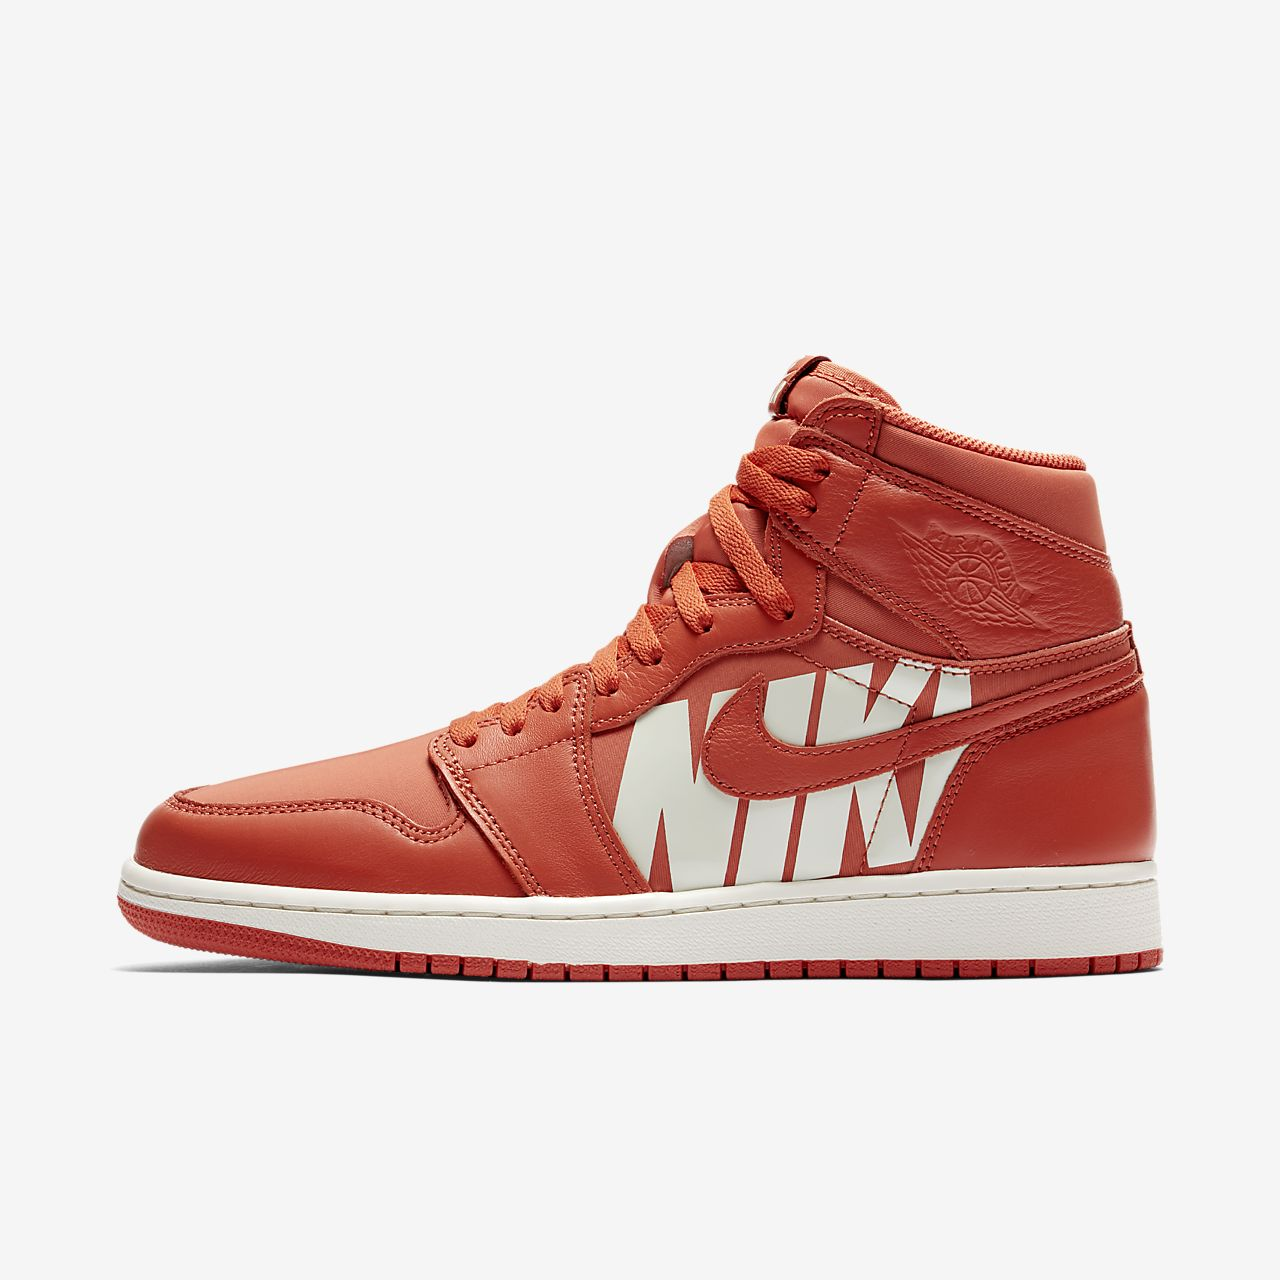 19000a86f803 Air Jordan 1 Retro High OG Shoe. Nike.com NZ